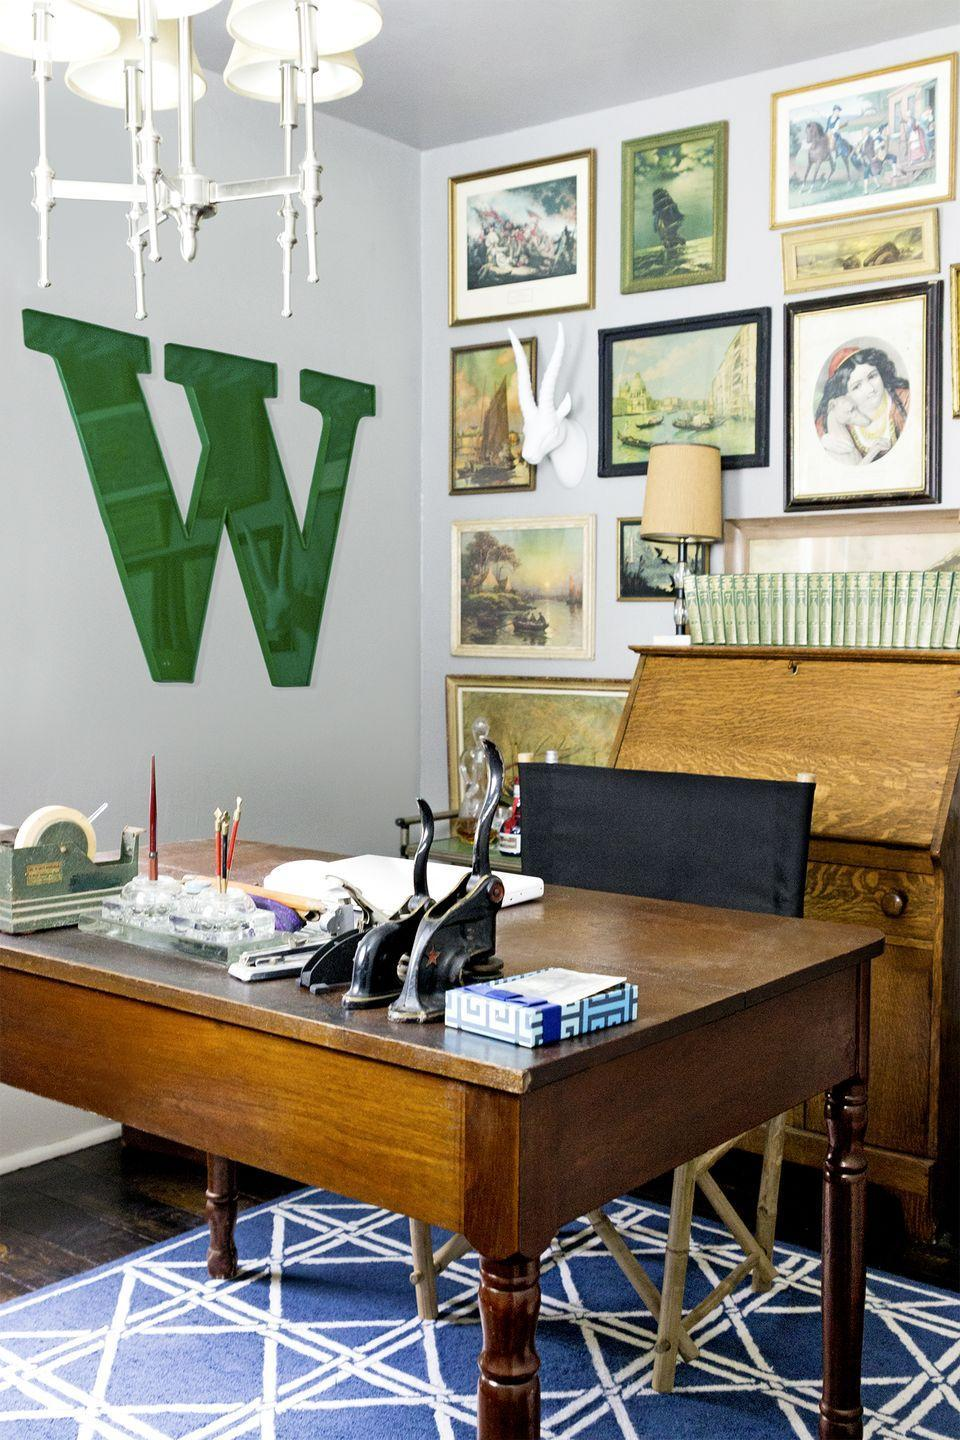 <p>Part office, part art gallery: Surround your desk with inspiring prints and artwork, complete with mismatched frames. </p>